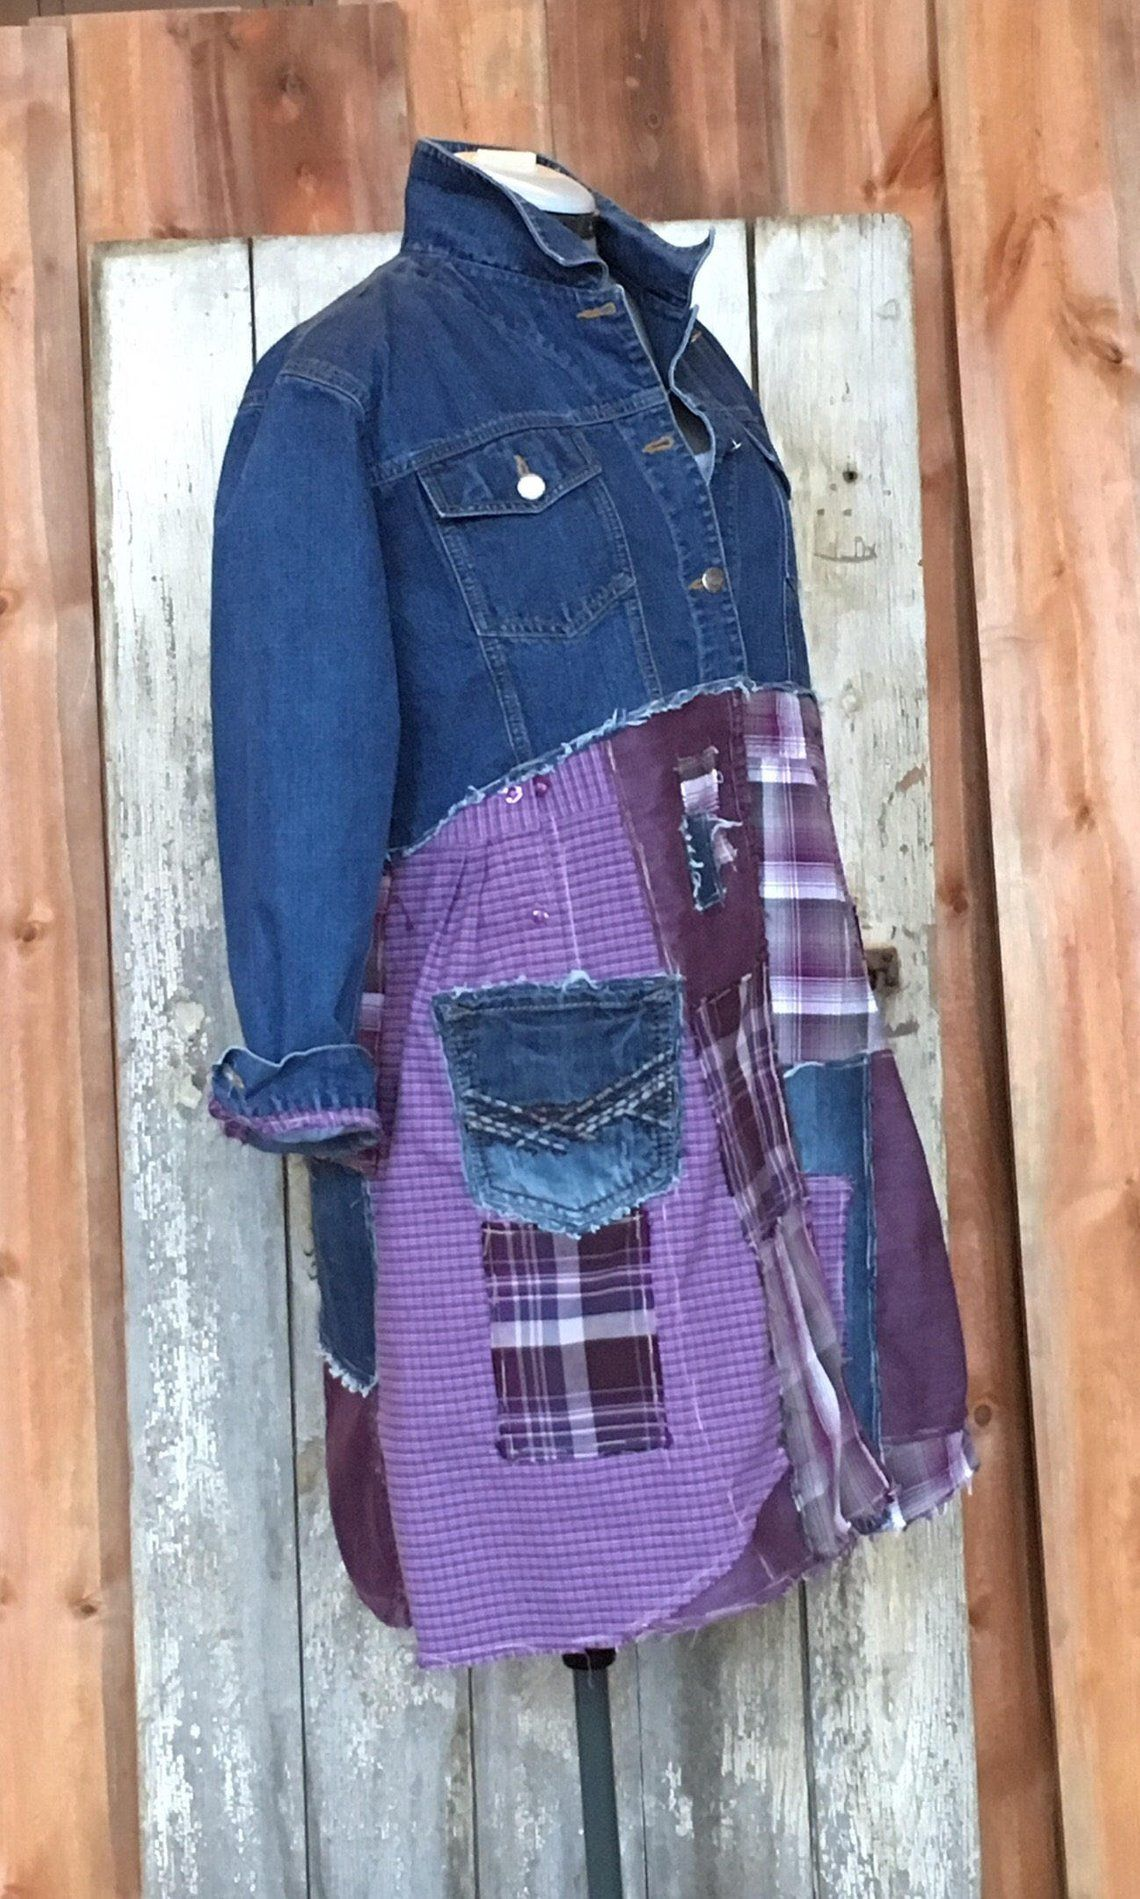 SOLD to PEGGY: Boho Jacket | Shabby Chic|Gypsy Jacket | Reclaimed Clothing|Farmhouse Jacket|Bohemian |Boho Cute Clothes |Remix Clothing